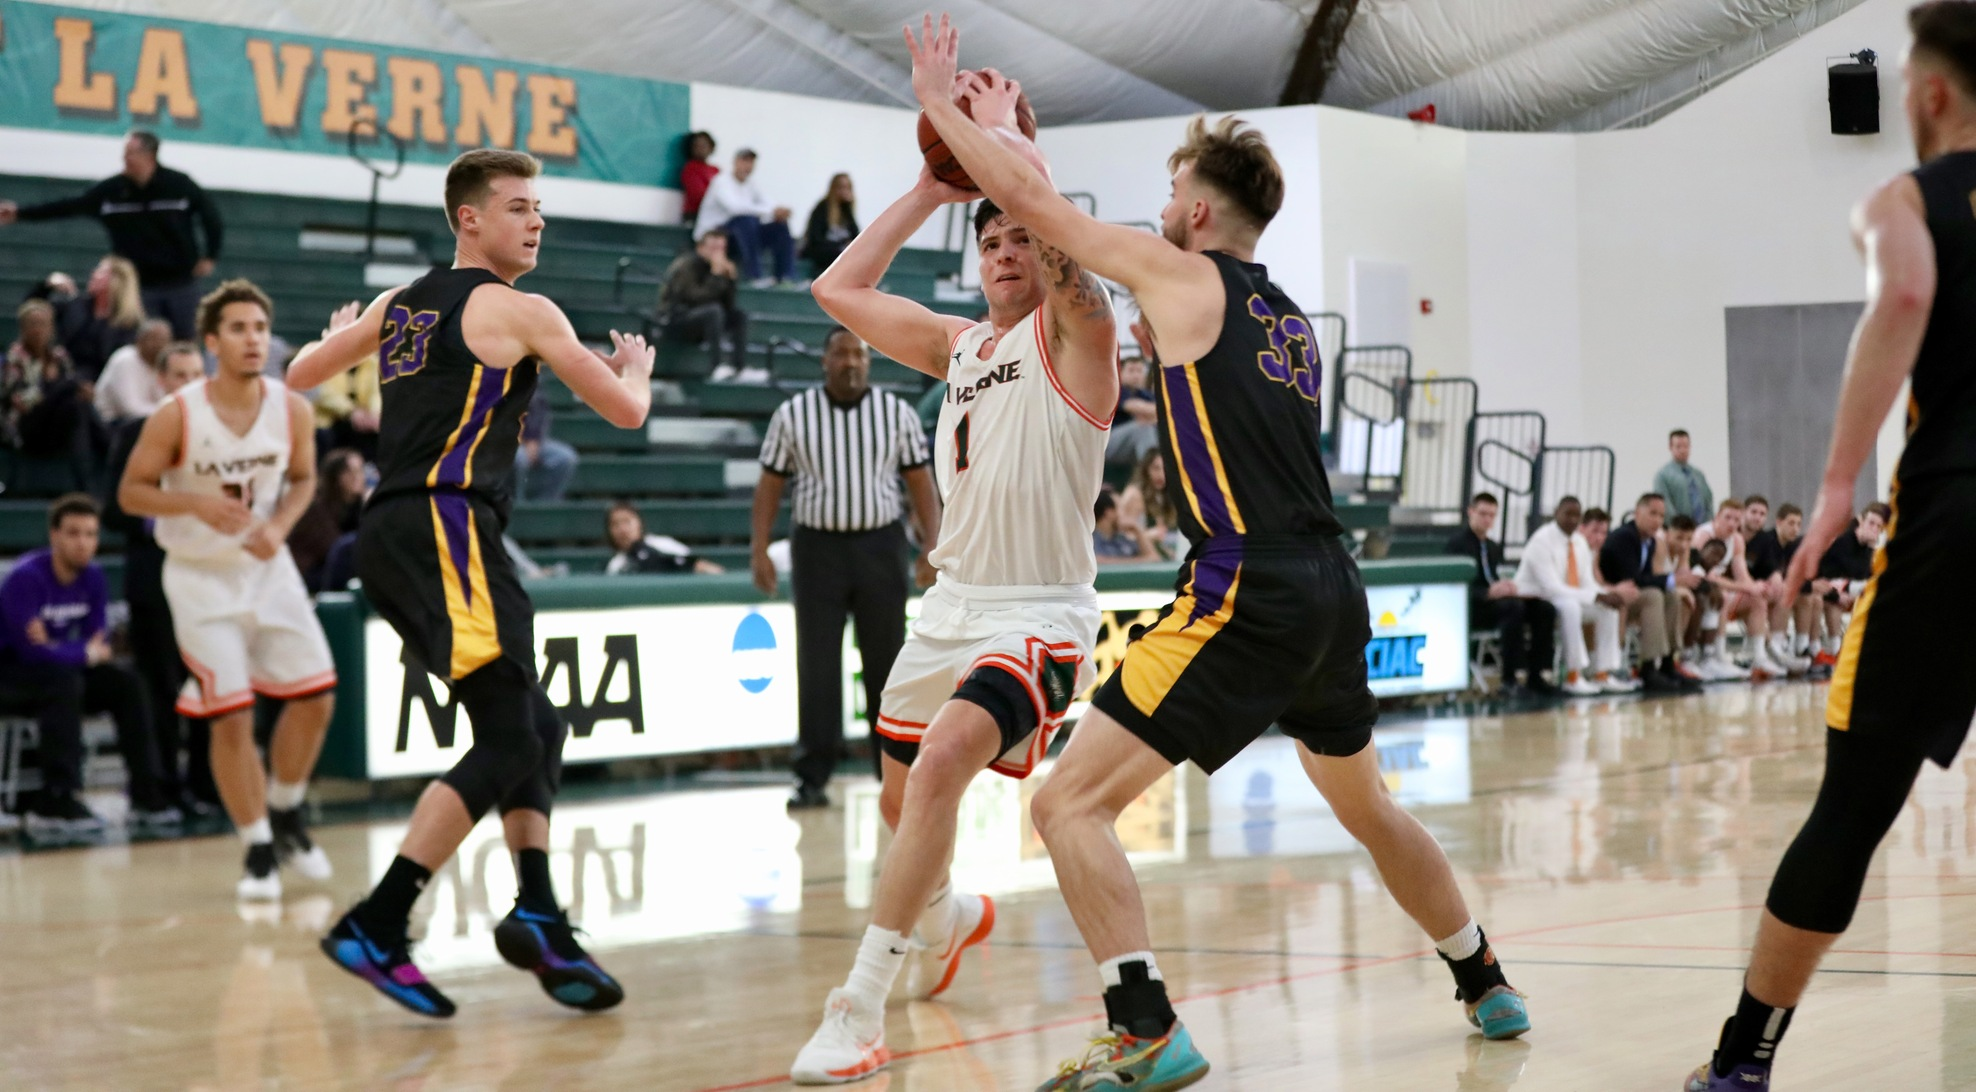 Costa scores career-high 24 points against Cal Lutheran